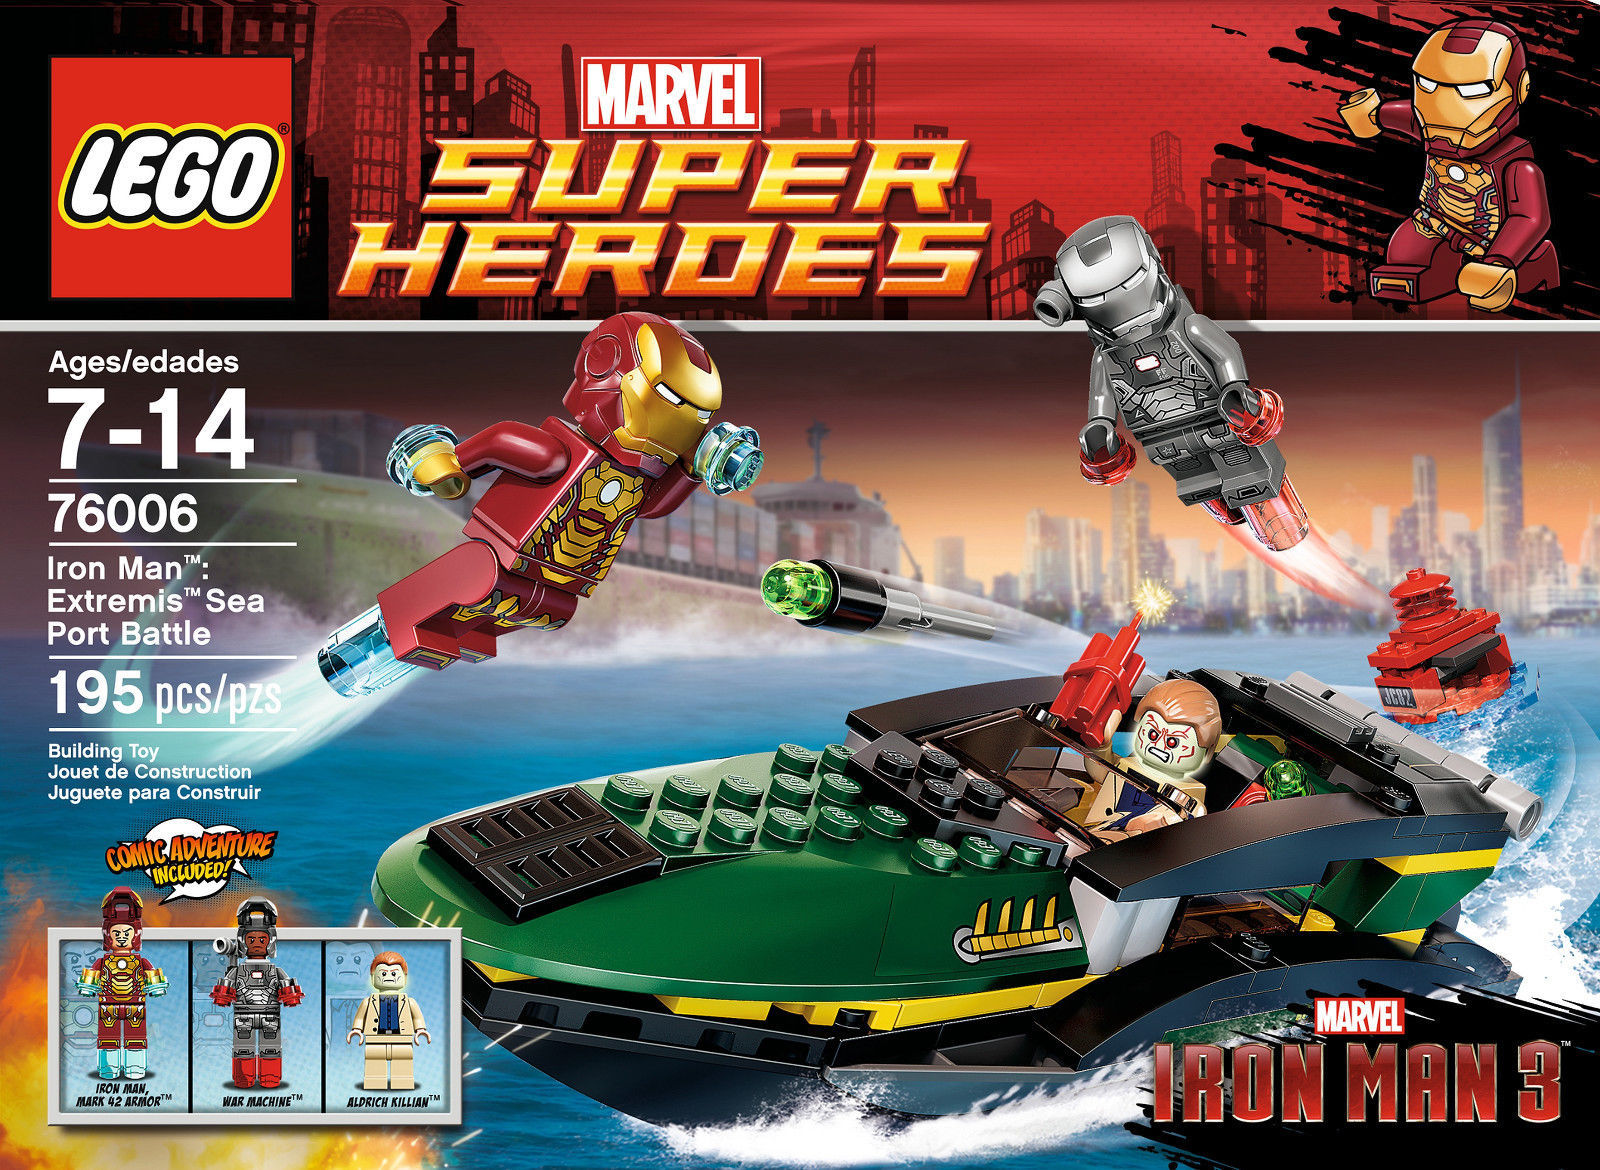 LEGO Super Heroes Iron Man Extremis Sea Port Battle 76006 Building Set [New]